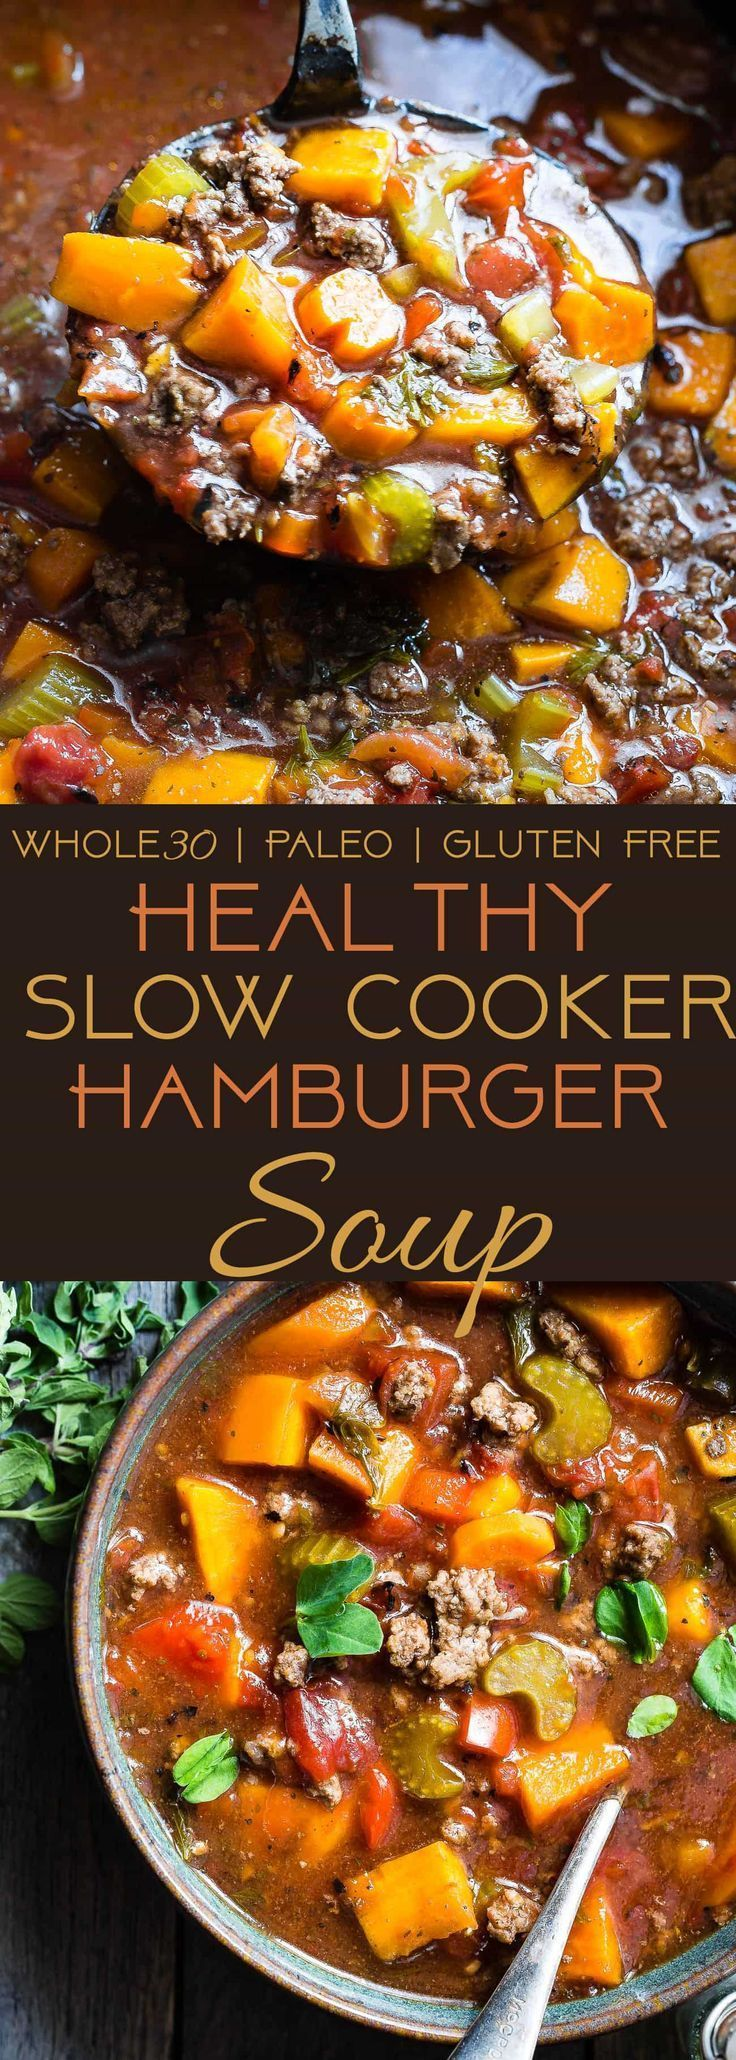 Paleo Slow Cooker Hamburger Soup - This easy, healthy hamburger soup is made in the slow cooker and is a grain/dairy/sugar/gluten free and whole30 dinner that the whole family will love! Makes great leftovers too! | Foodfaithfitness.com | @FoodFaithFit comfort foods, grain free, beef stews, crock pot, kid friendly